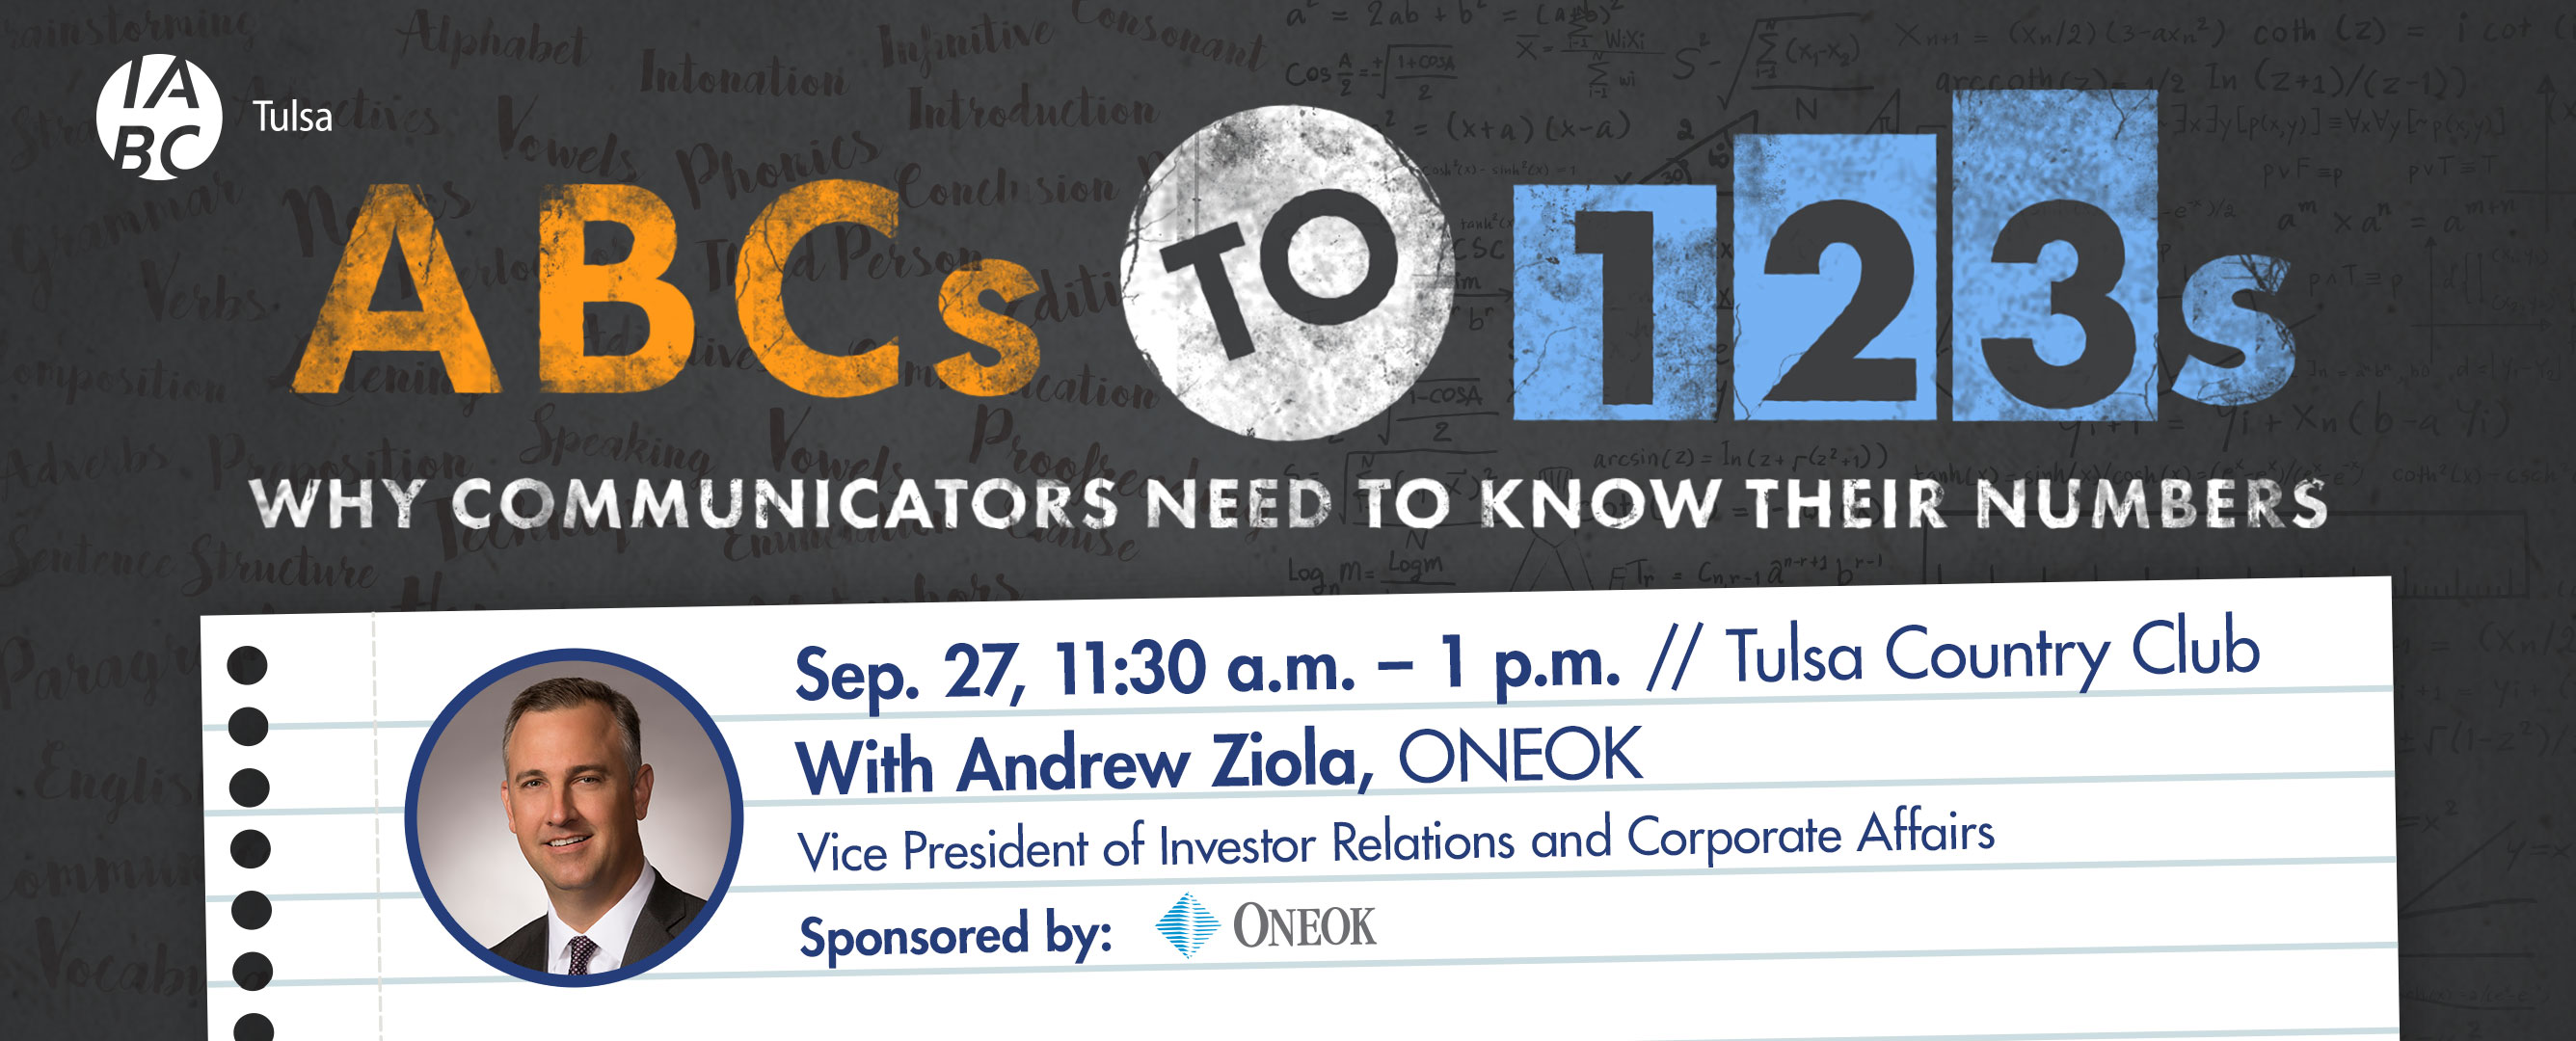 ABCs to 123s: Why Communicators Need to Know Their Numbers